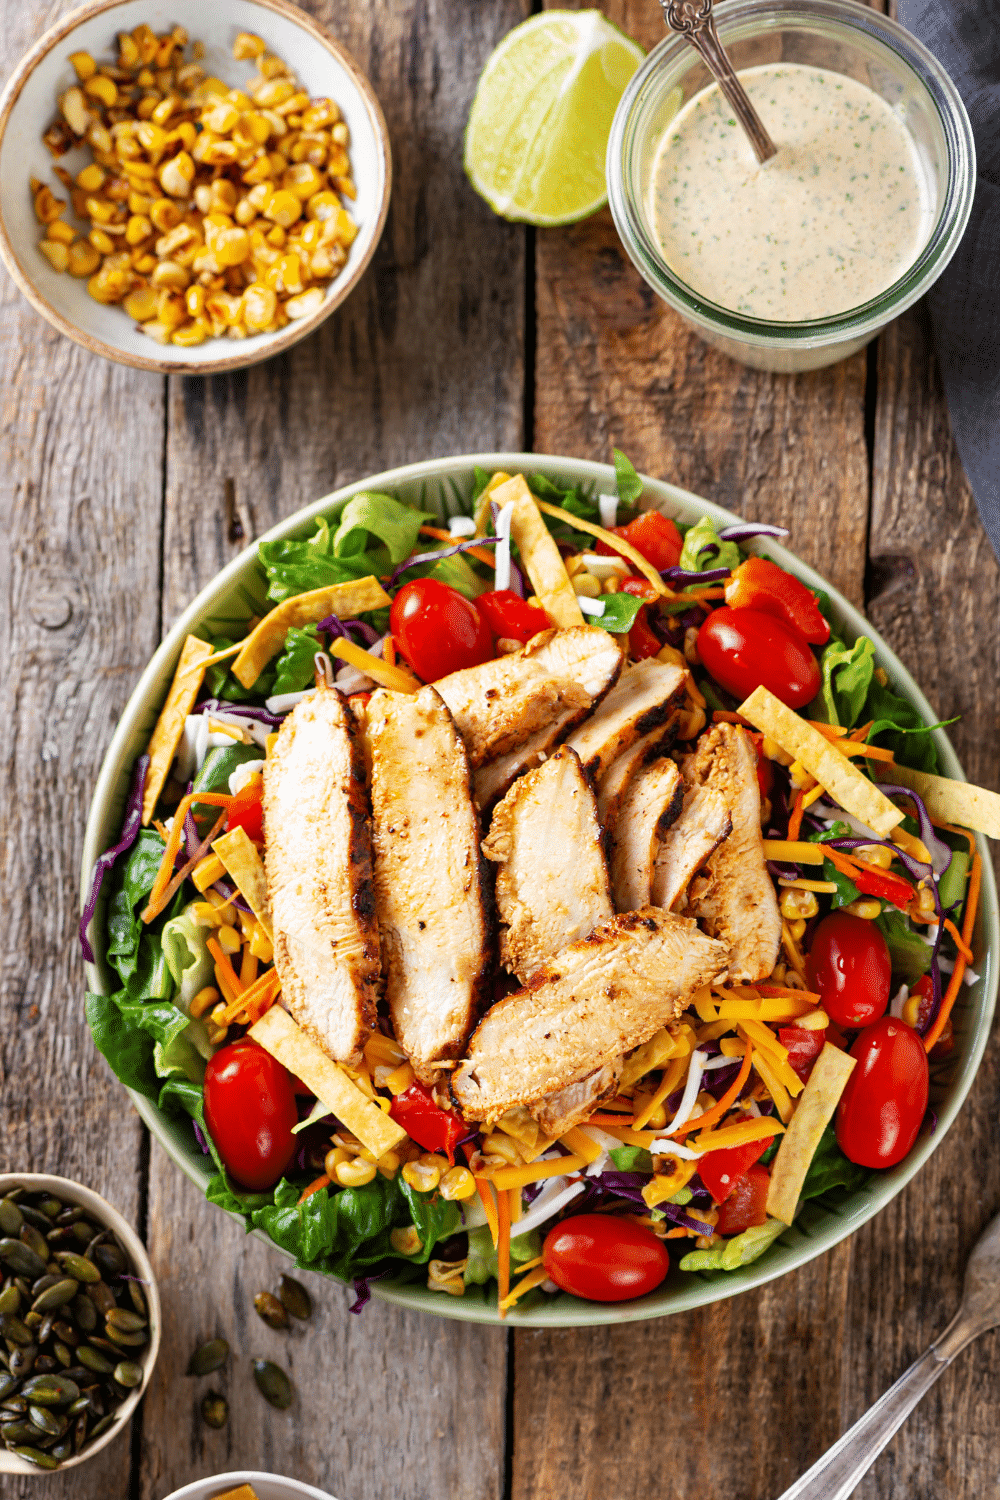 A southwest chicken salad in a white bowl. There is a small white bowl of corn and a small glass jar of creamy salsa behind the bowl..